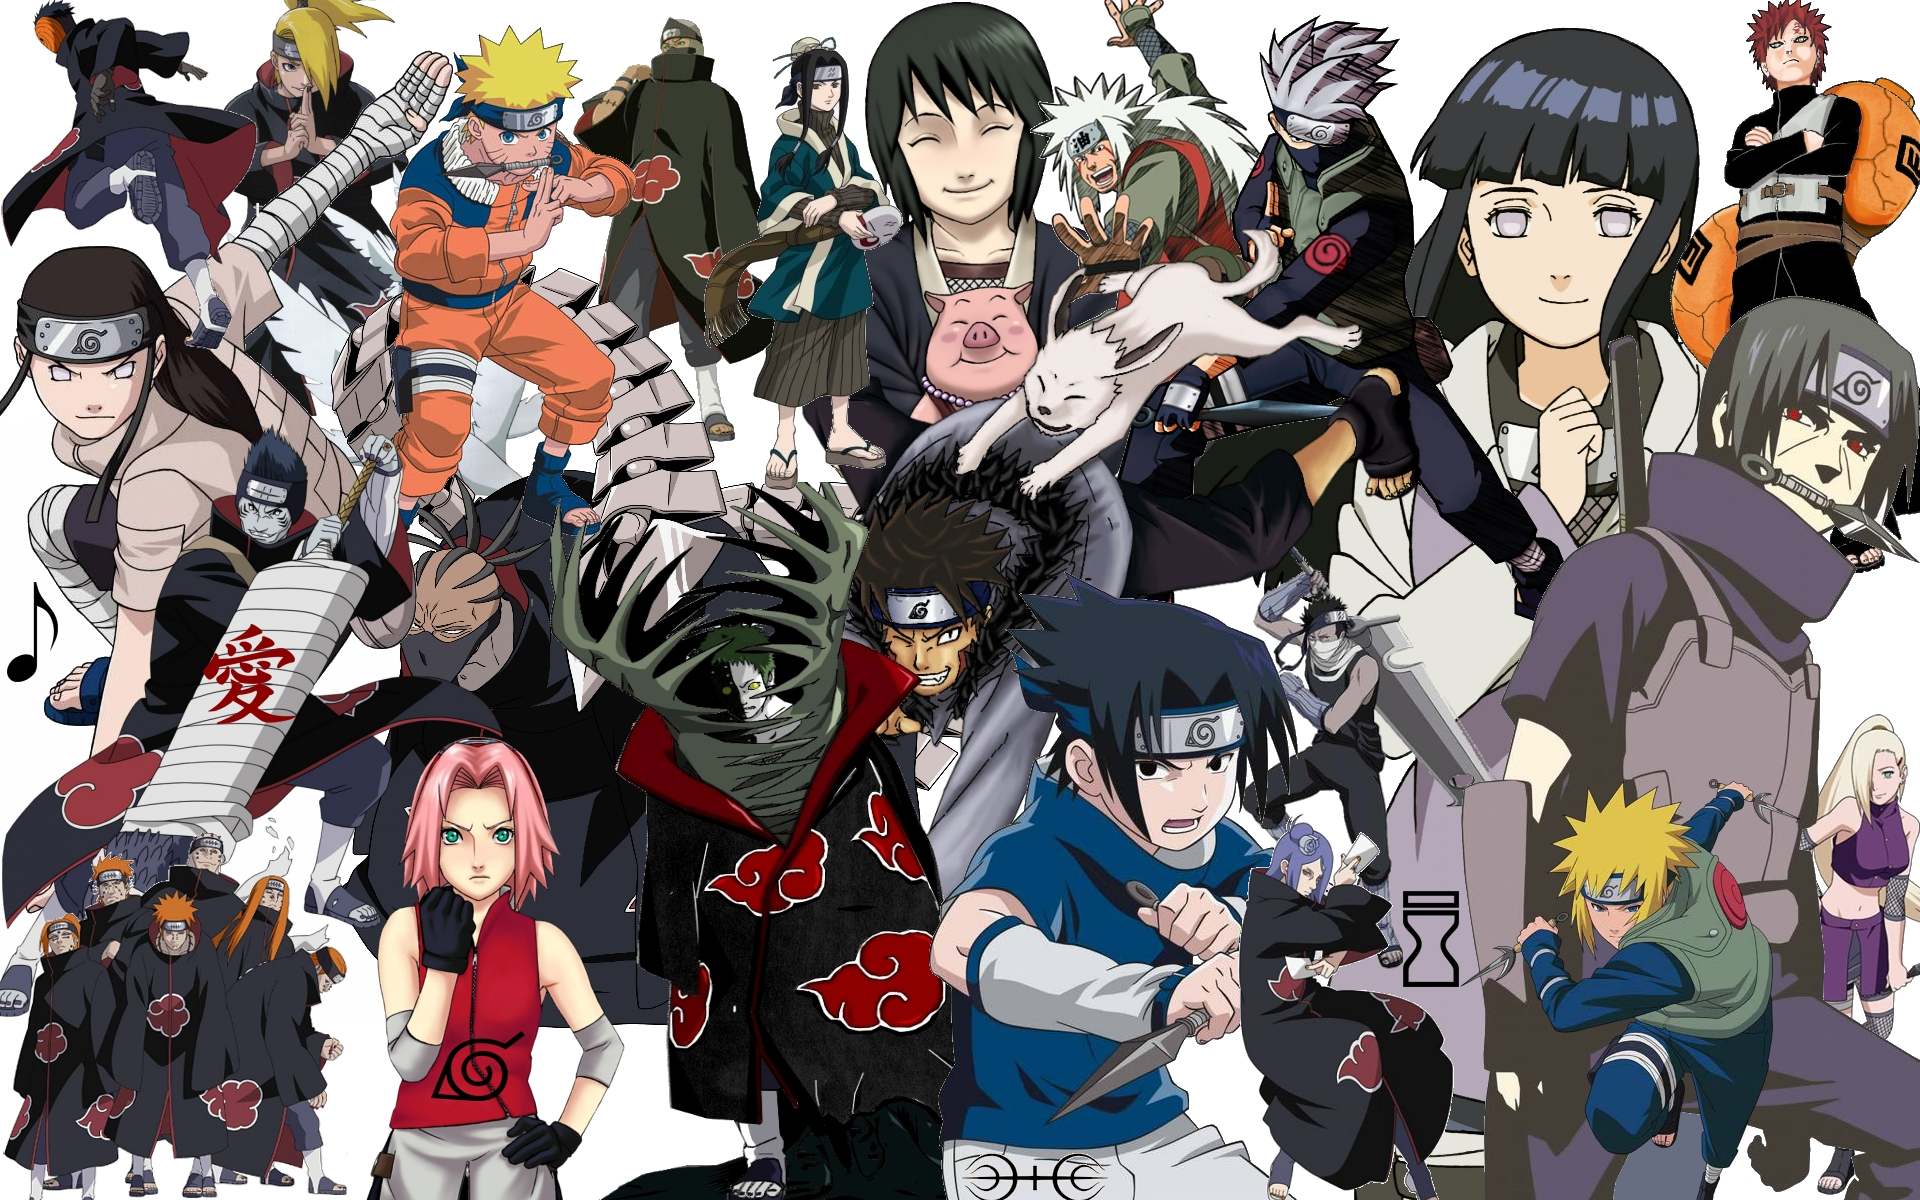 Anime Characters Naruto : Naruto collage wallpaper by superzproductions on deviantart